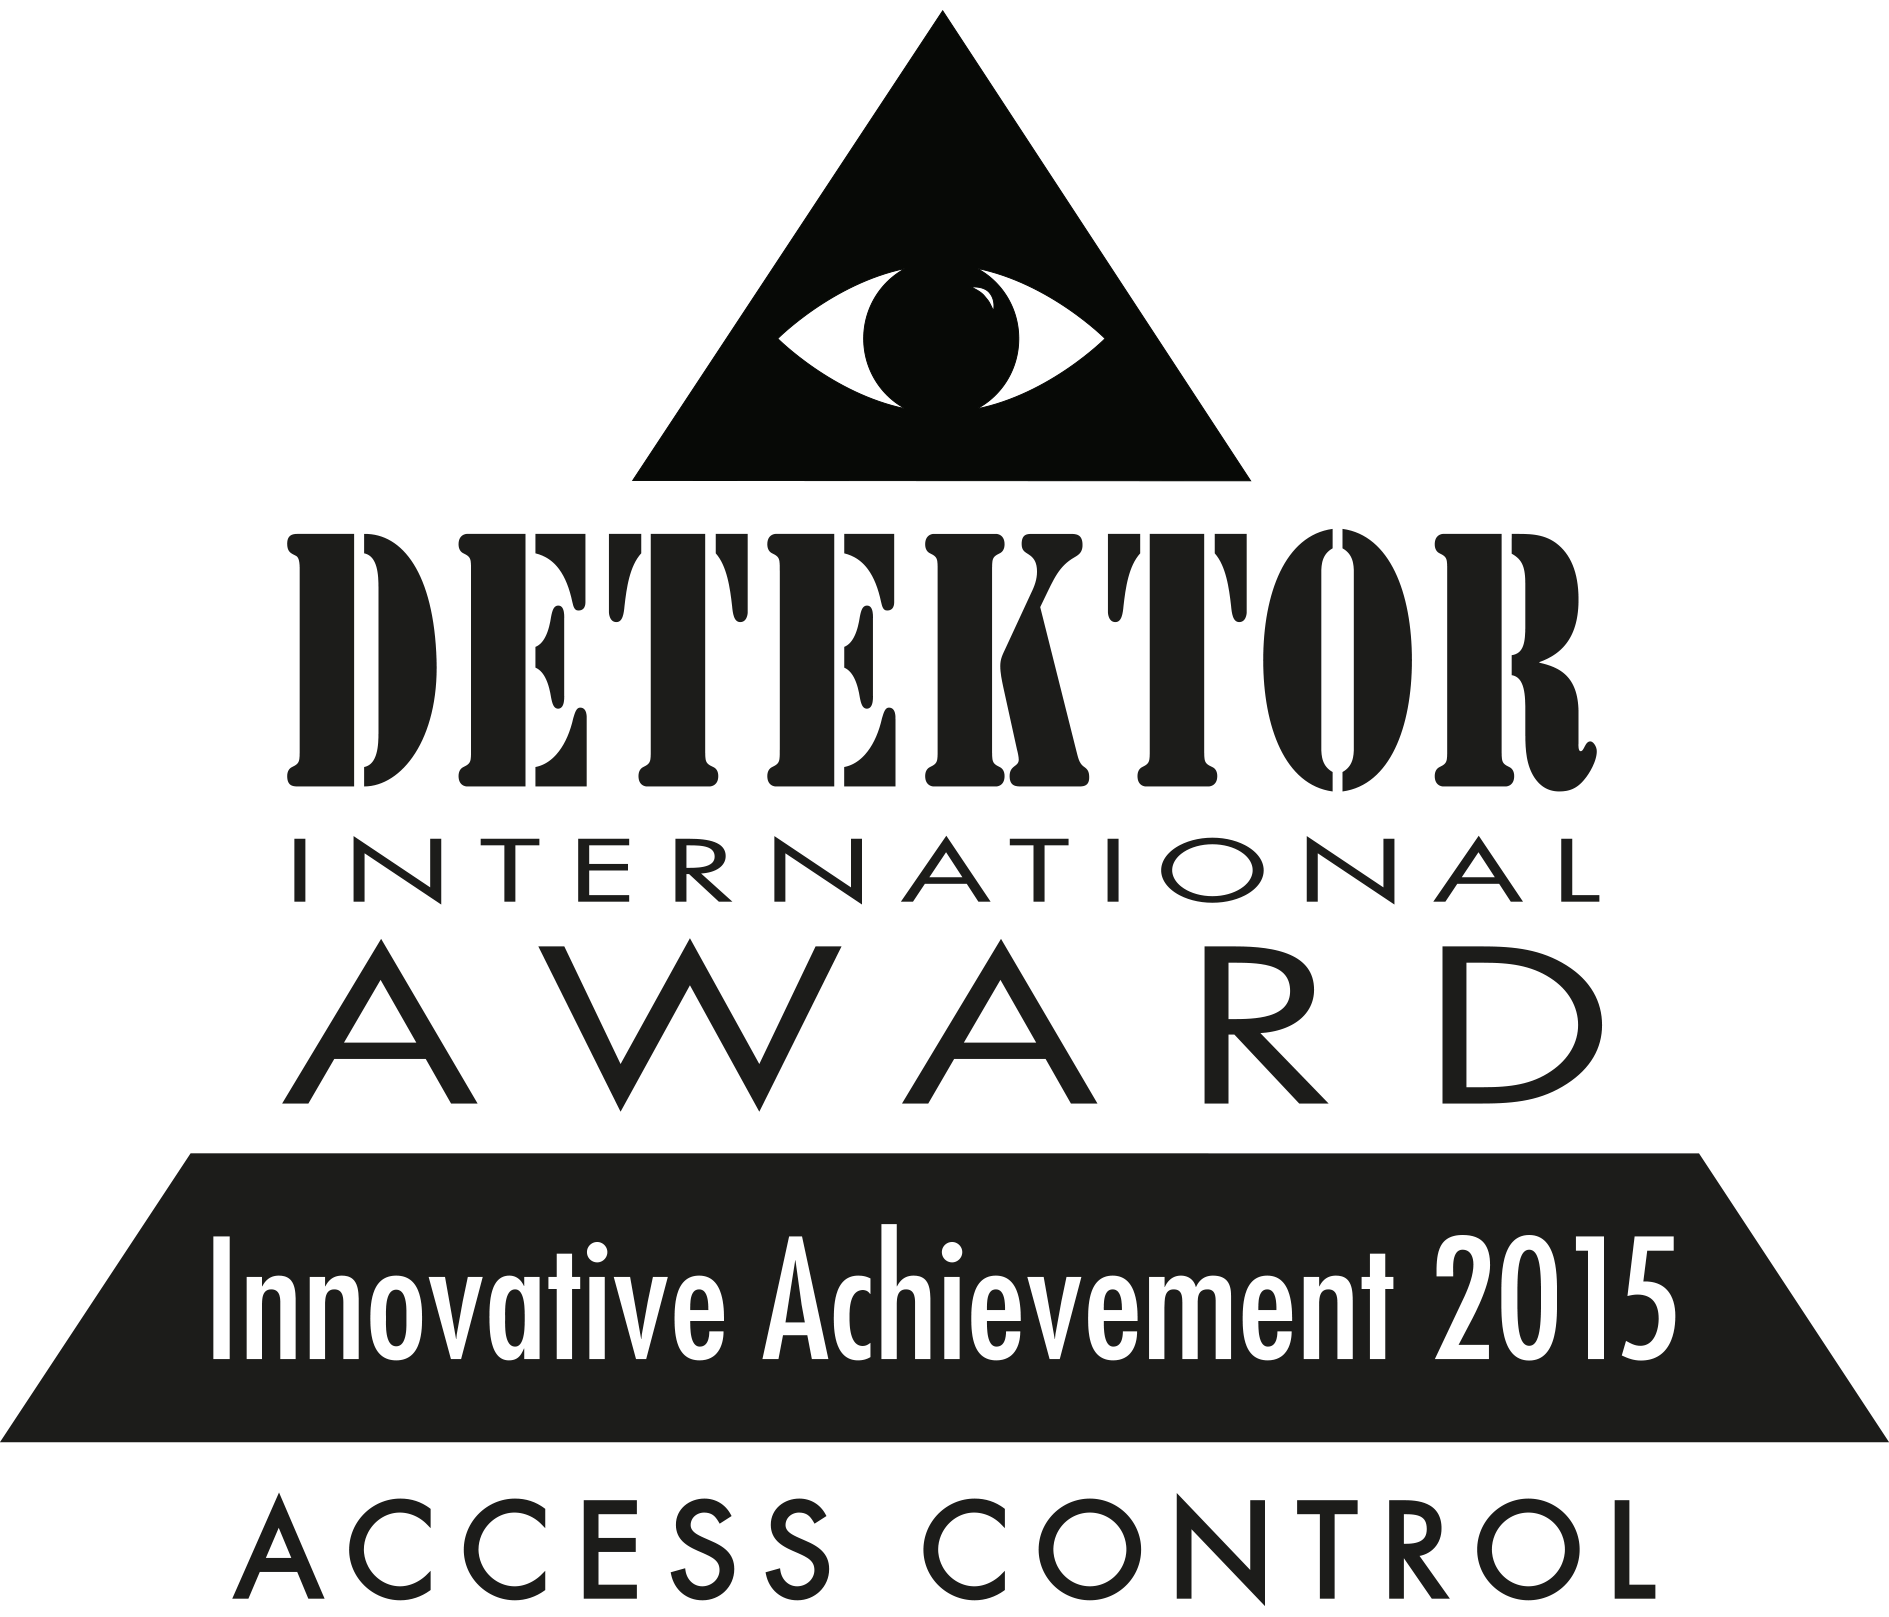 Detektor International Awards